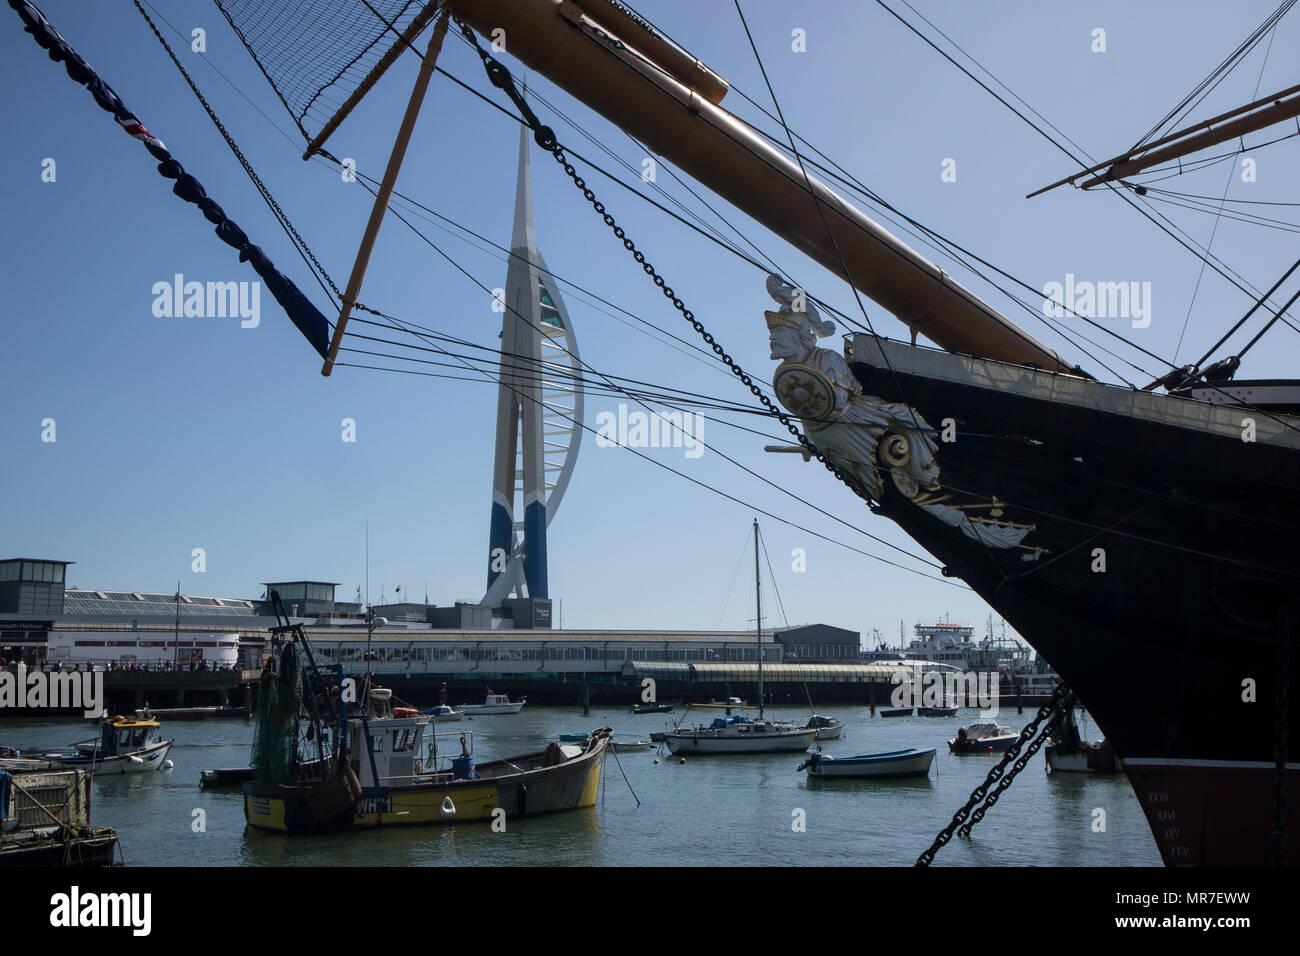 HMS Warrier in Portsmouth Historic Dockyards, UK, with the Emirates Spinnaker in the background Stock Photo